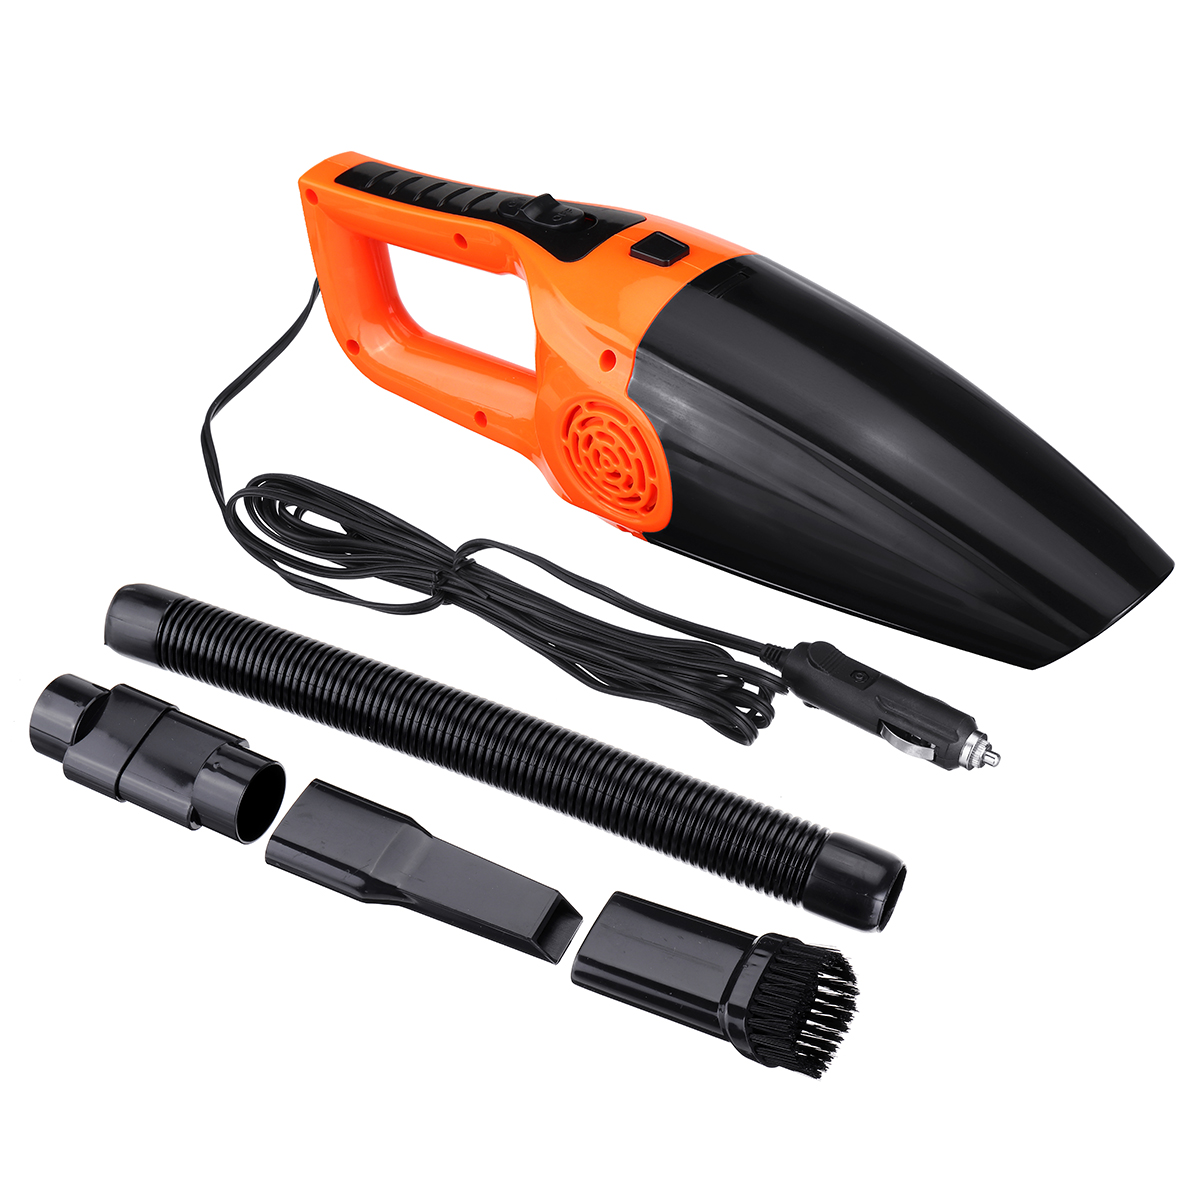 4800pa Car Vacuum Cleaner 120W Portable Handheld Vacuum Cleaner Wet and Dry Dual Use Car Vacuum Asur Voiture 12V